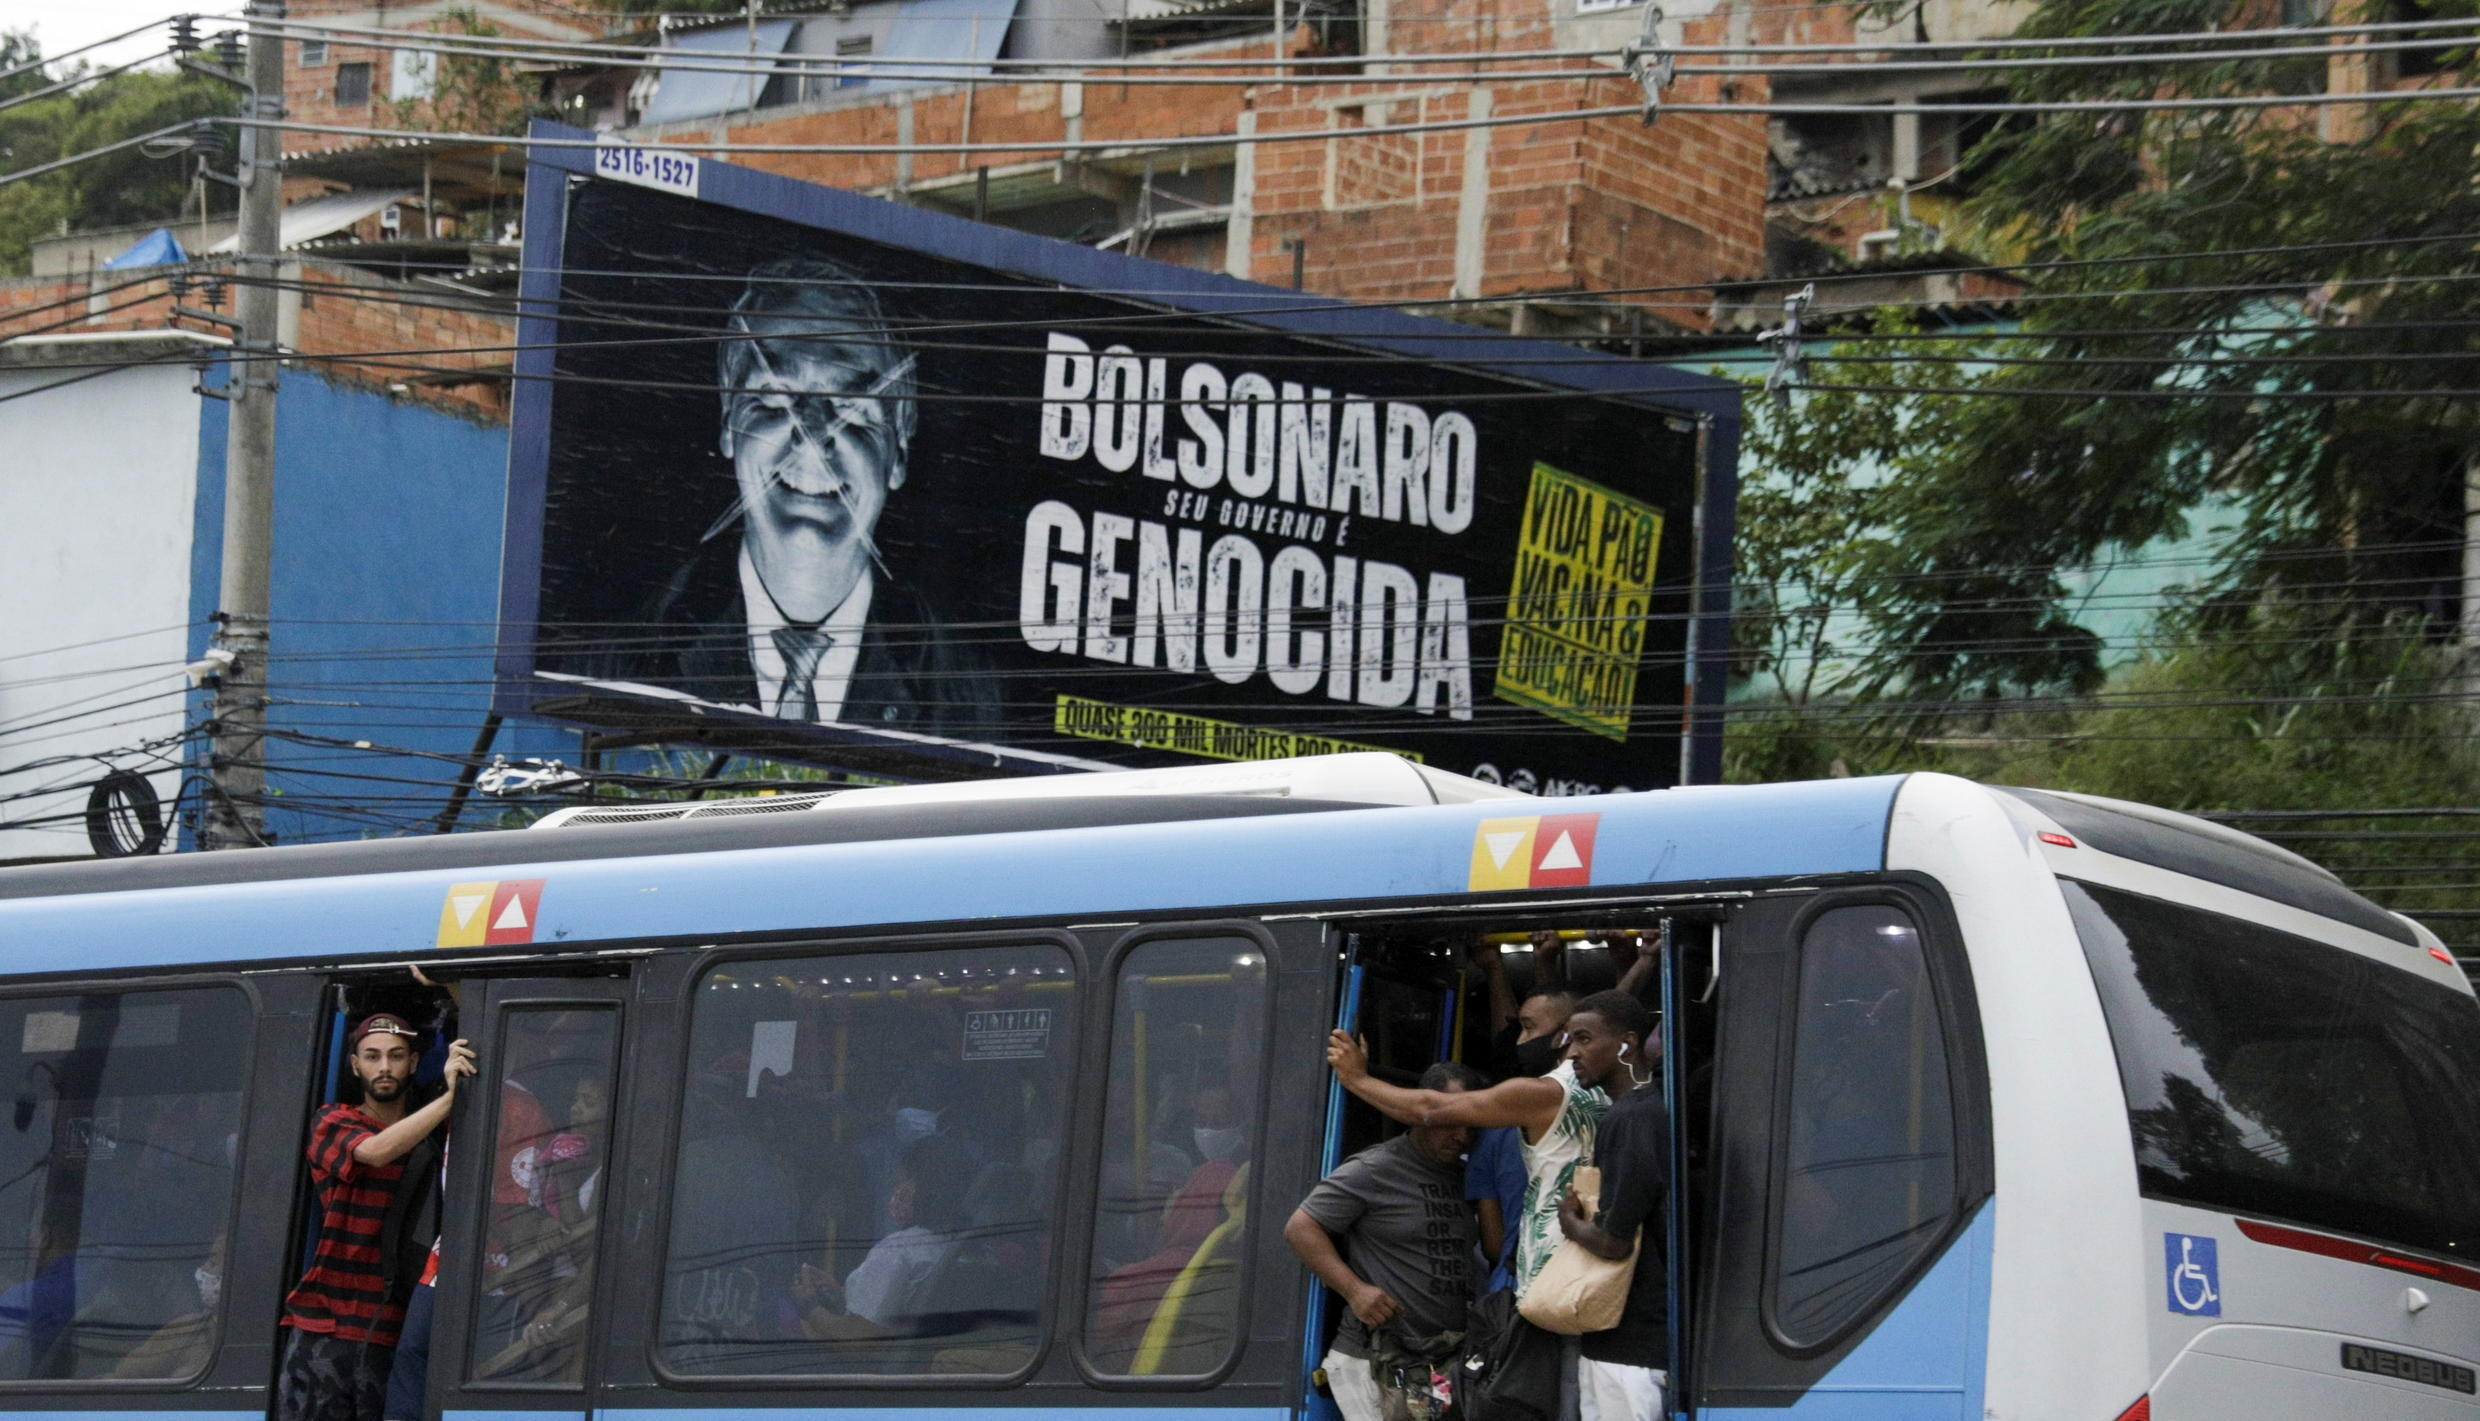 With pandemic out of control, army distances itself from Jair Bolsonaro